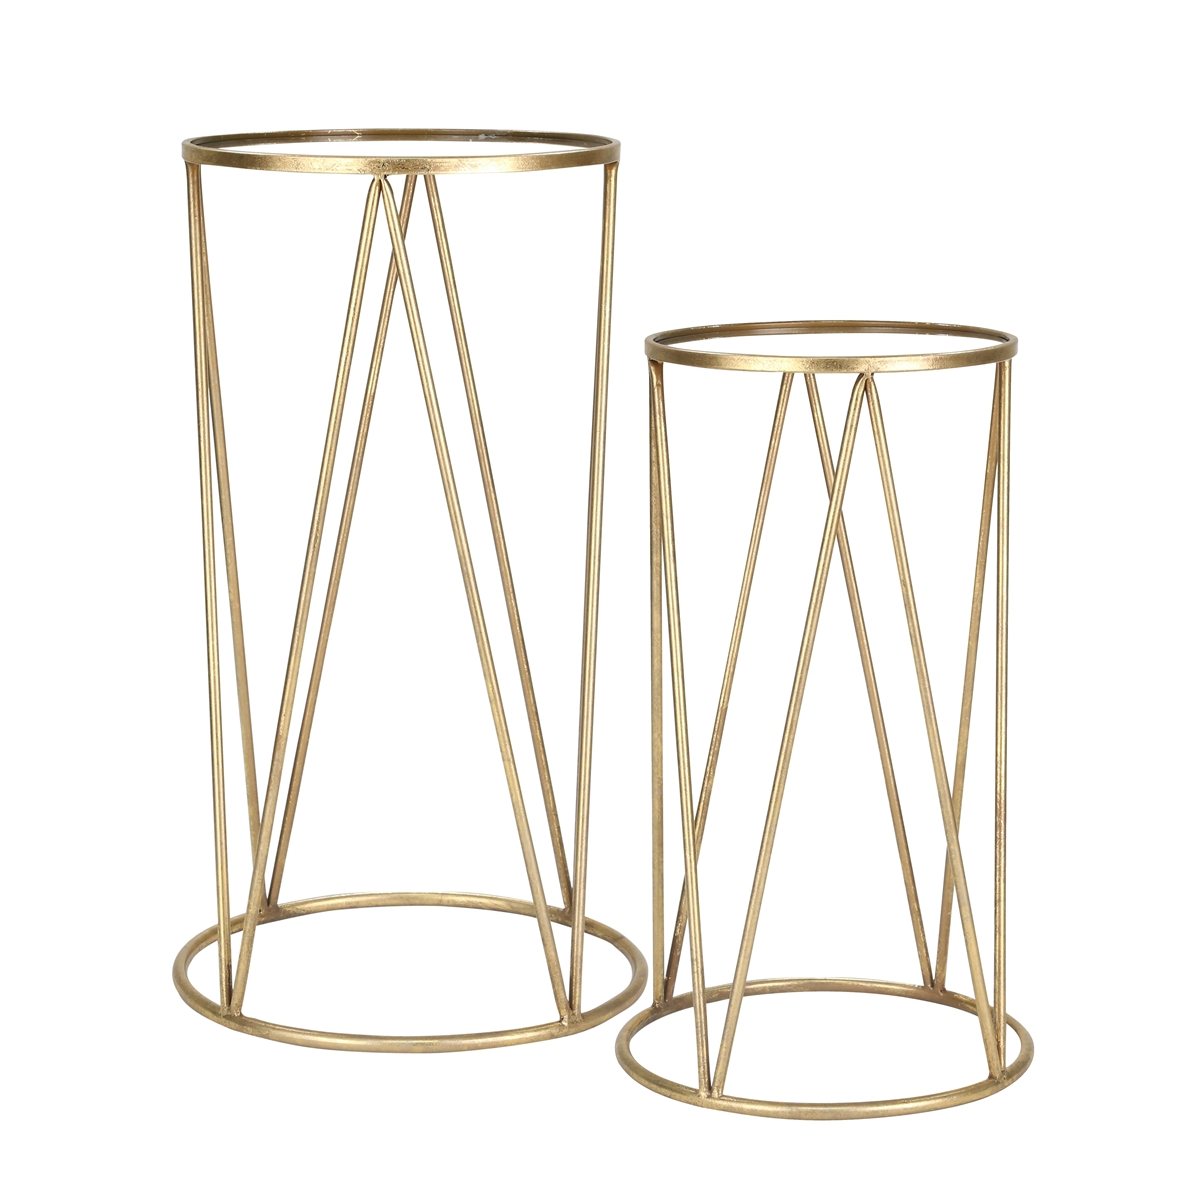 metal mirror accent tables gold sagebrook home table and runner quilt patterns white marble ultra slim console west elm metro floor lamp vintage mahogany side laminate trim modern